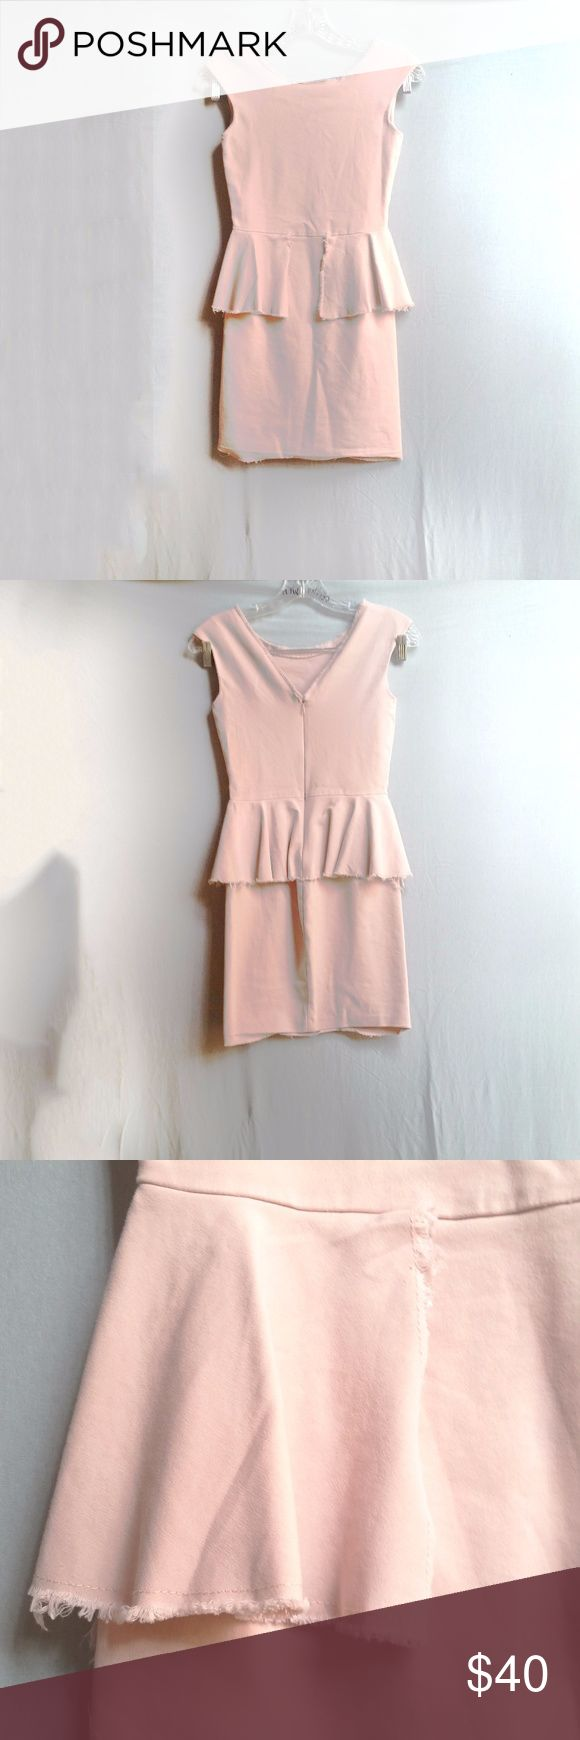 """Zara Pink Raw Hem Peplum Bodycon Dress Worn once - dry cleaned. No flaws or stains. Has a raw hem with frayed edges. Back zipper. V neck in front and back. Tag Size: Small Length: 32"""" Waist to Hem: 18"""" Waist flatlay: 12.5-13"""" Pit to Pit: 14.5"""" 48% cotton, 45% polyamide 7% elastane (super stretchy!)  #tothedunes #zara #pink #peplum #cocktail #summer #spring #fall #basic #dinner #date #fancy #work #modern #chic #street Zara Dresses Mini"""